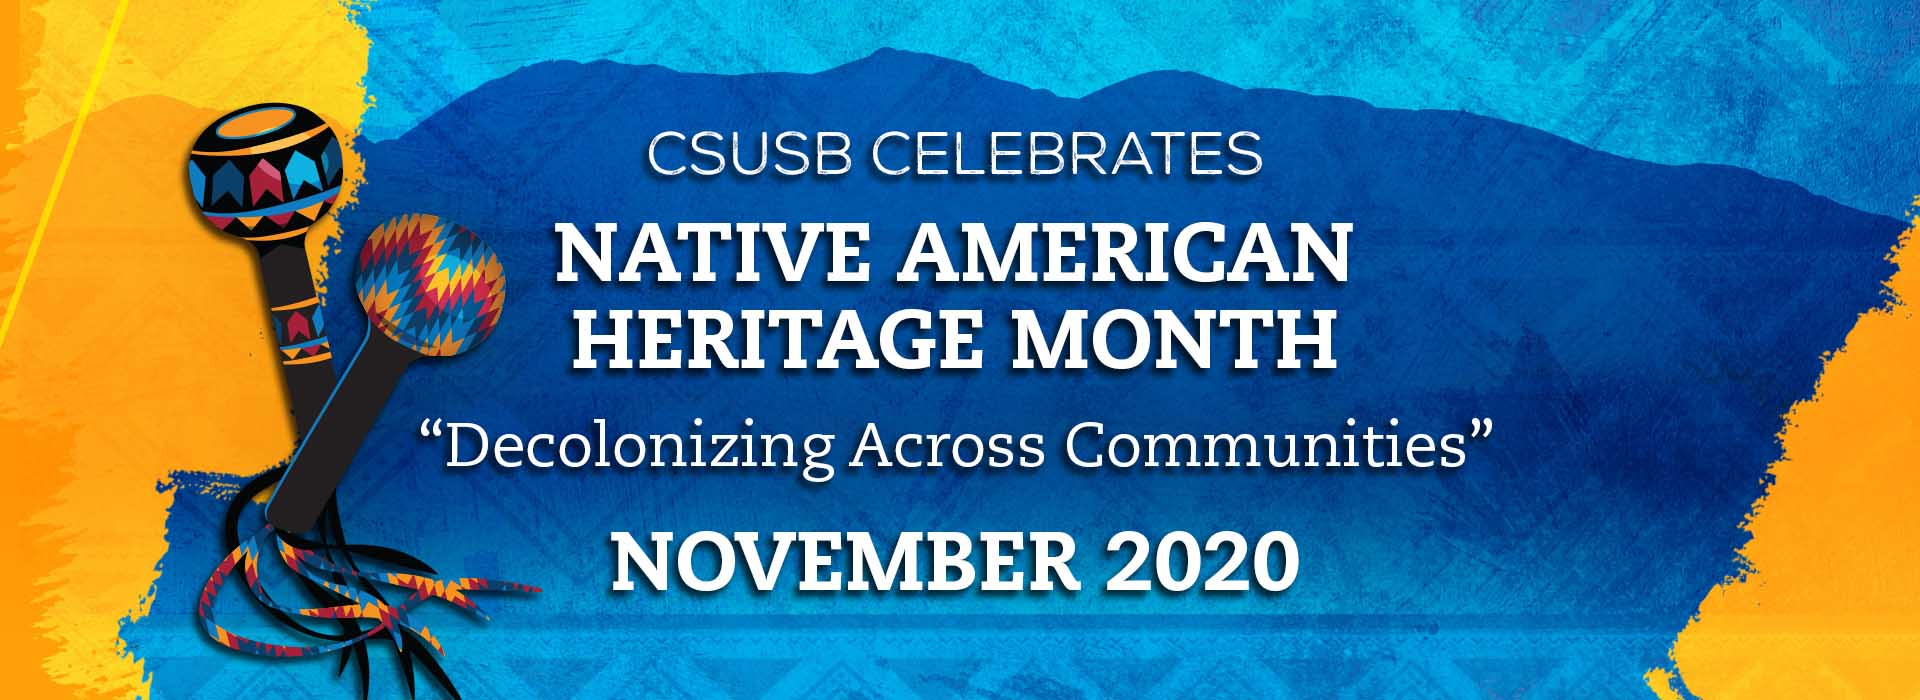 Native American Heritage Month 2020 banner